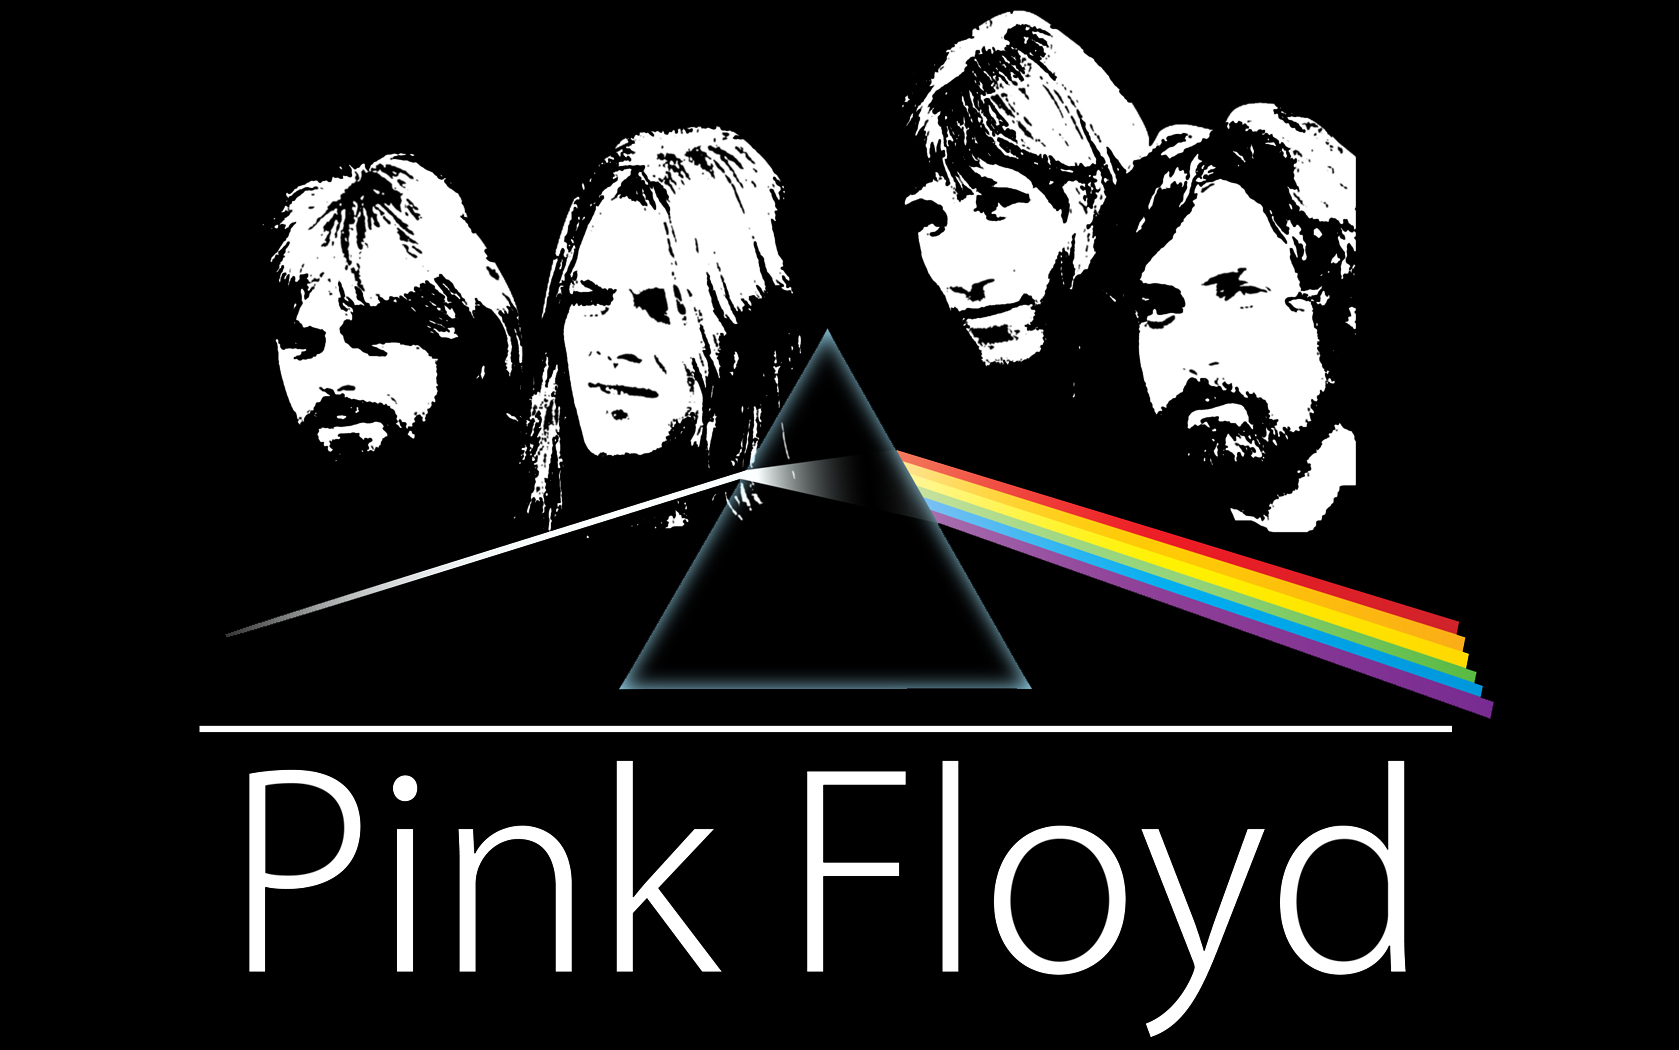 o que significa Pink Floyd